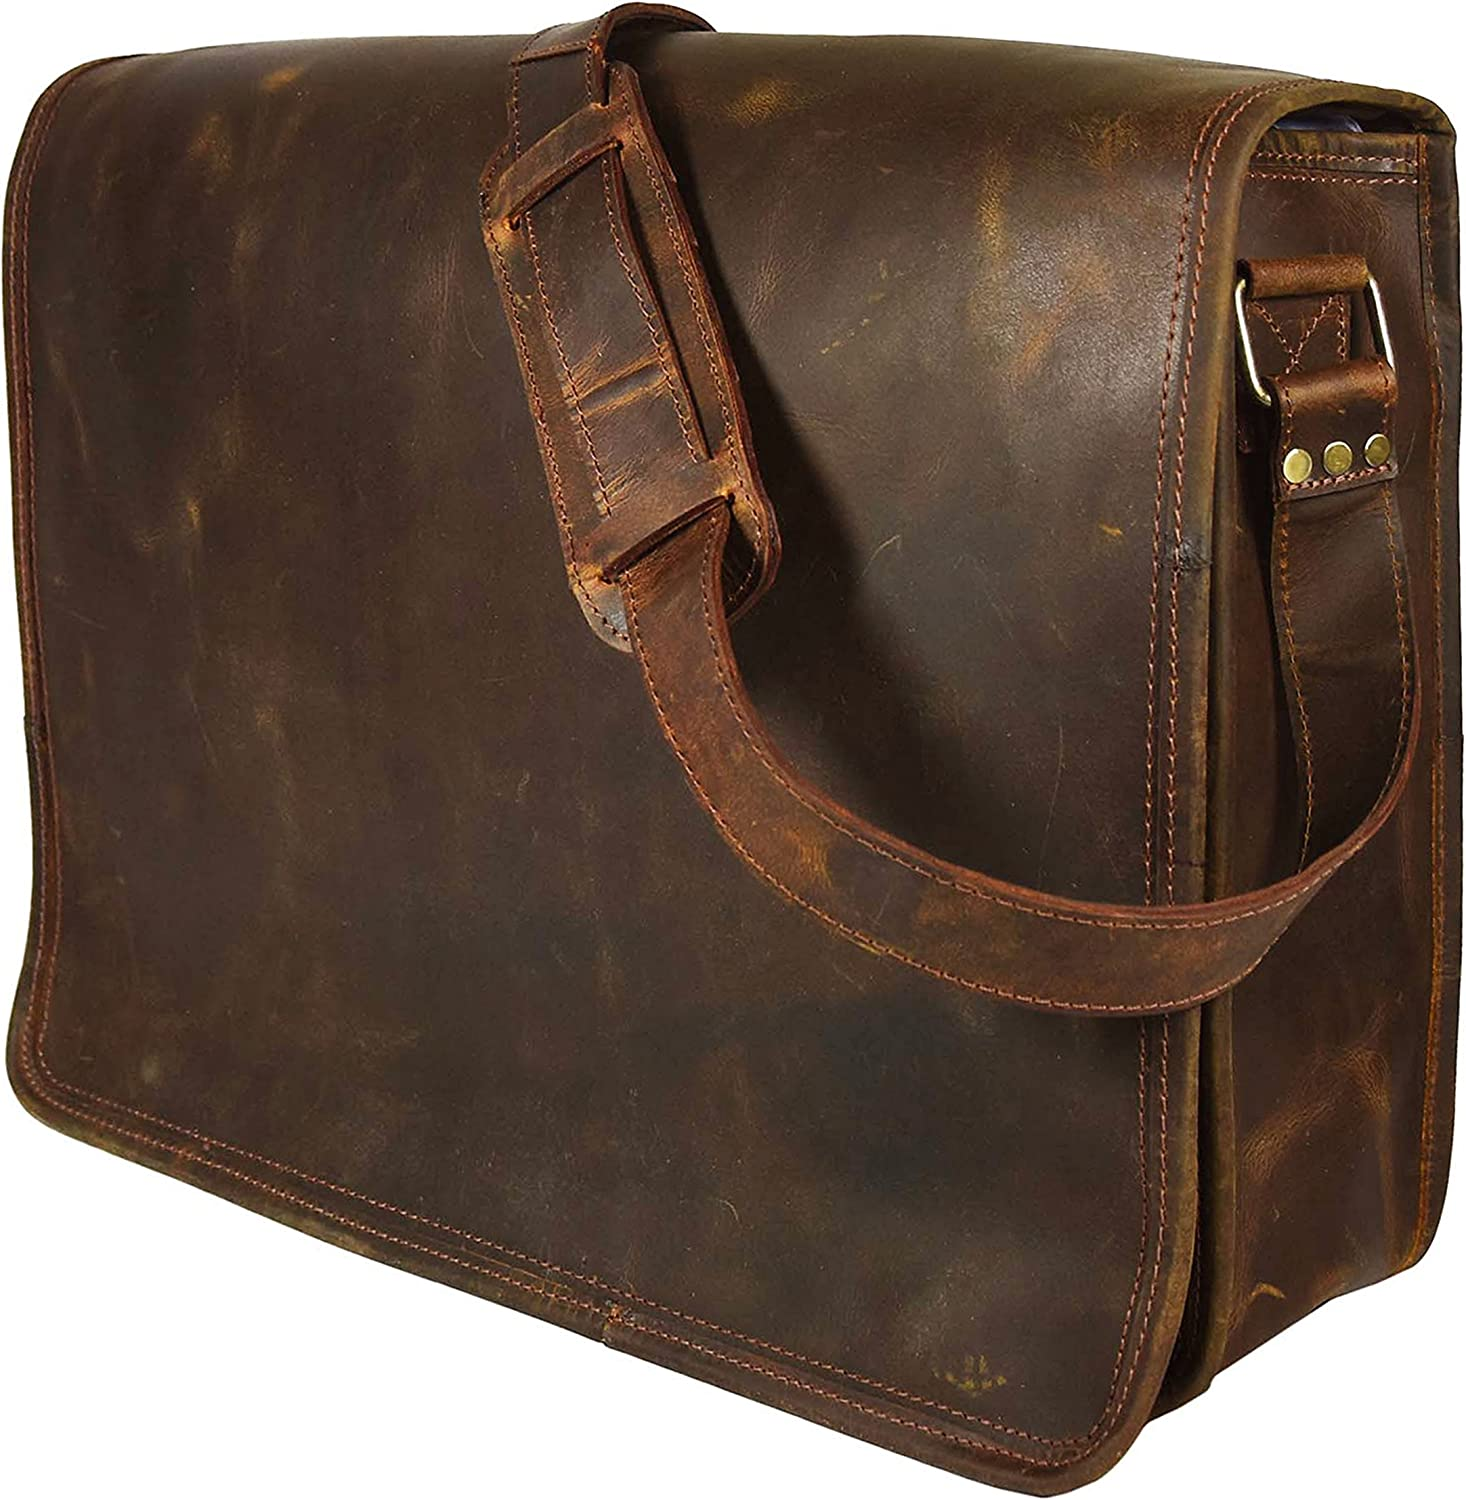 16 Inch Leather Vintage Rustic Crossbody Messenger Courier Satchel Bag Gift Men Women ~ Business Work Briefcase Carry Laptop Computer Book Handmade Rugged & Distressed by KK's Leather